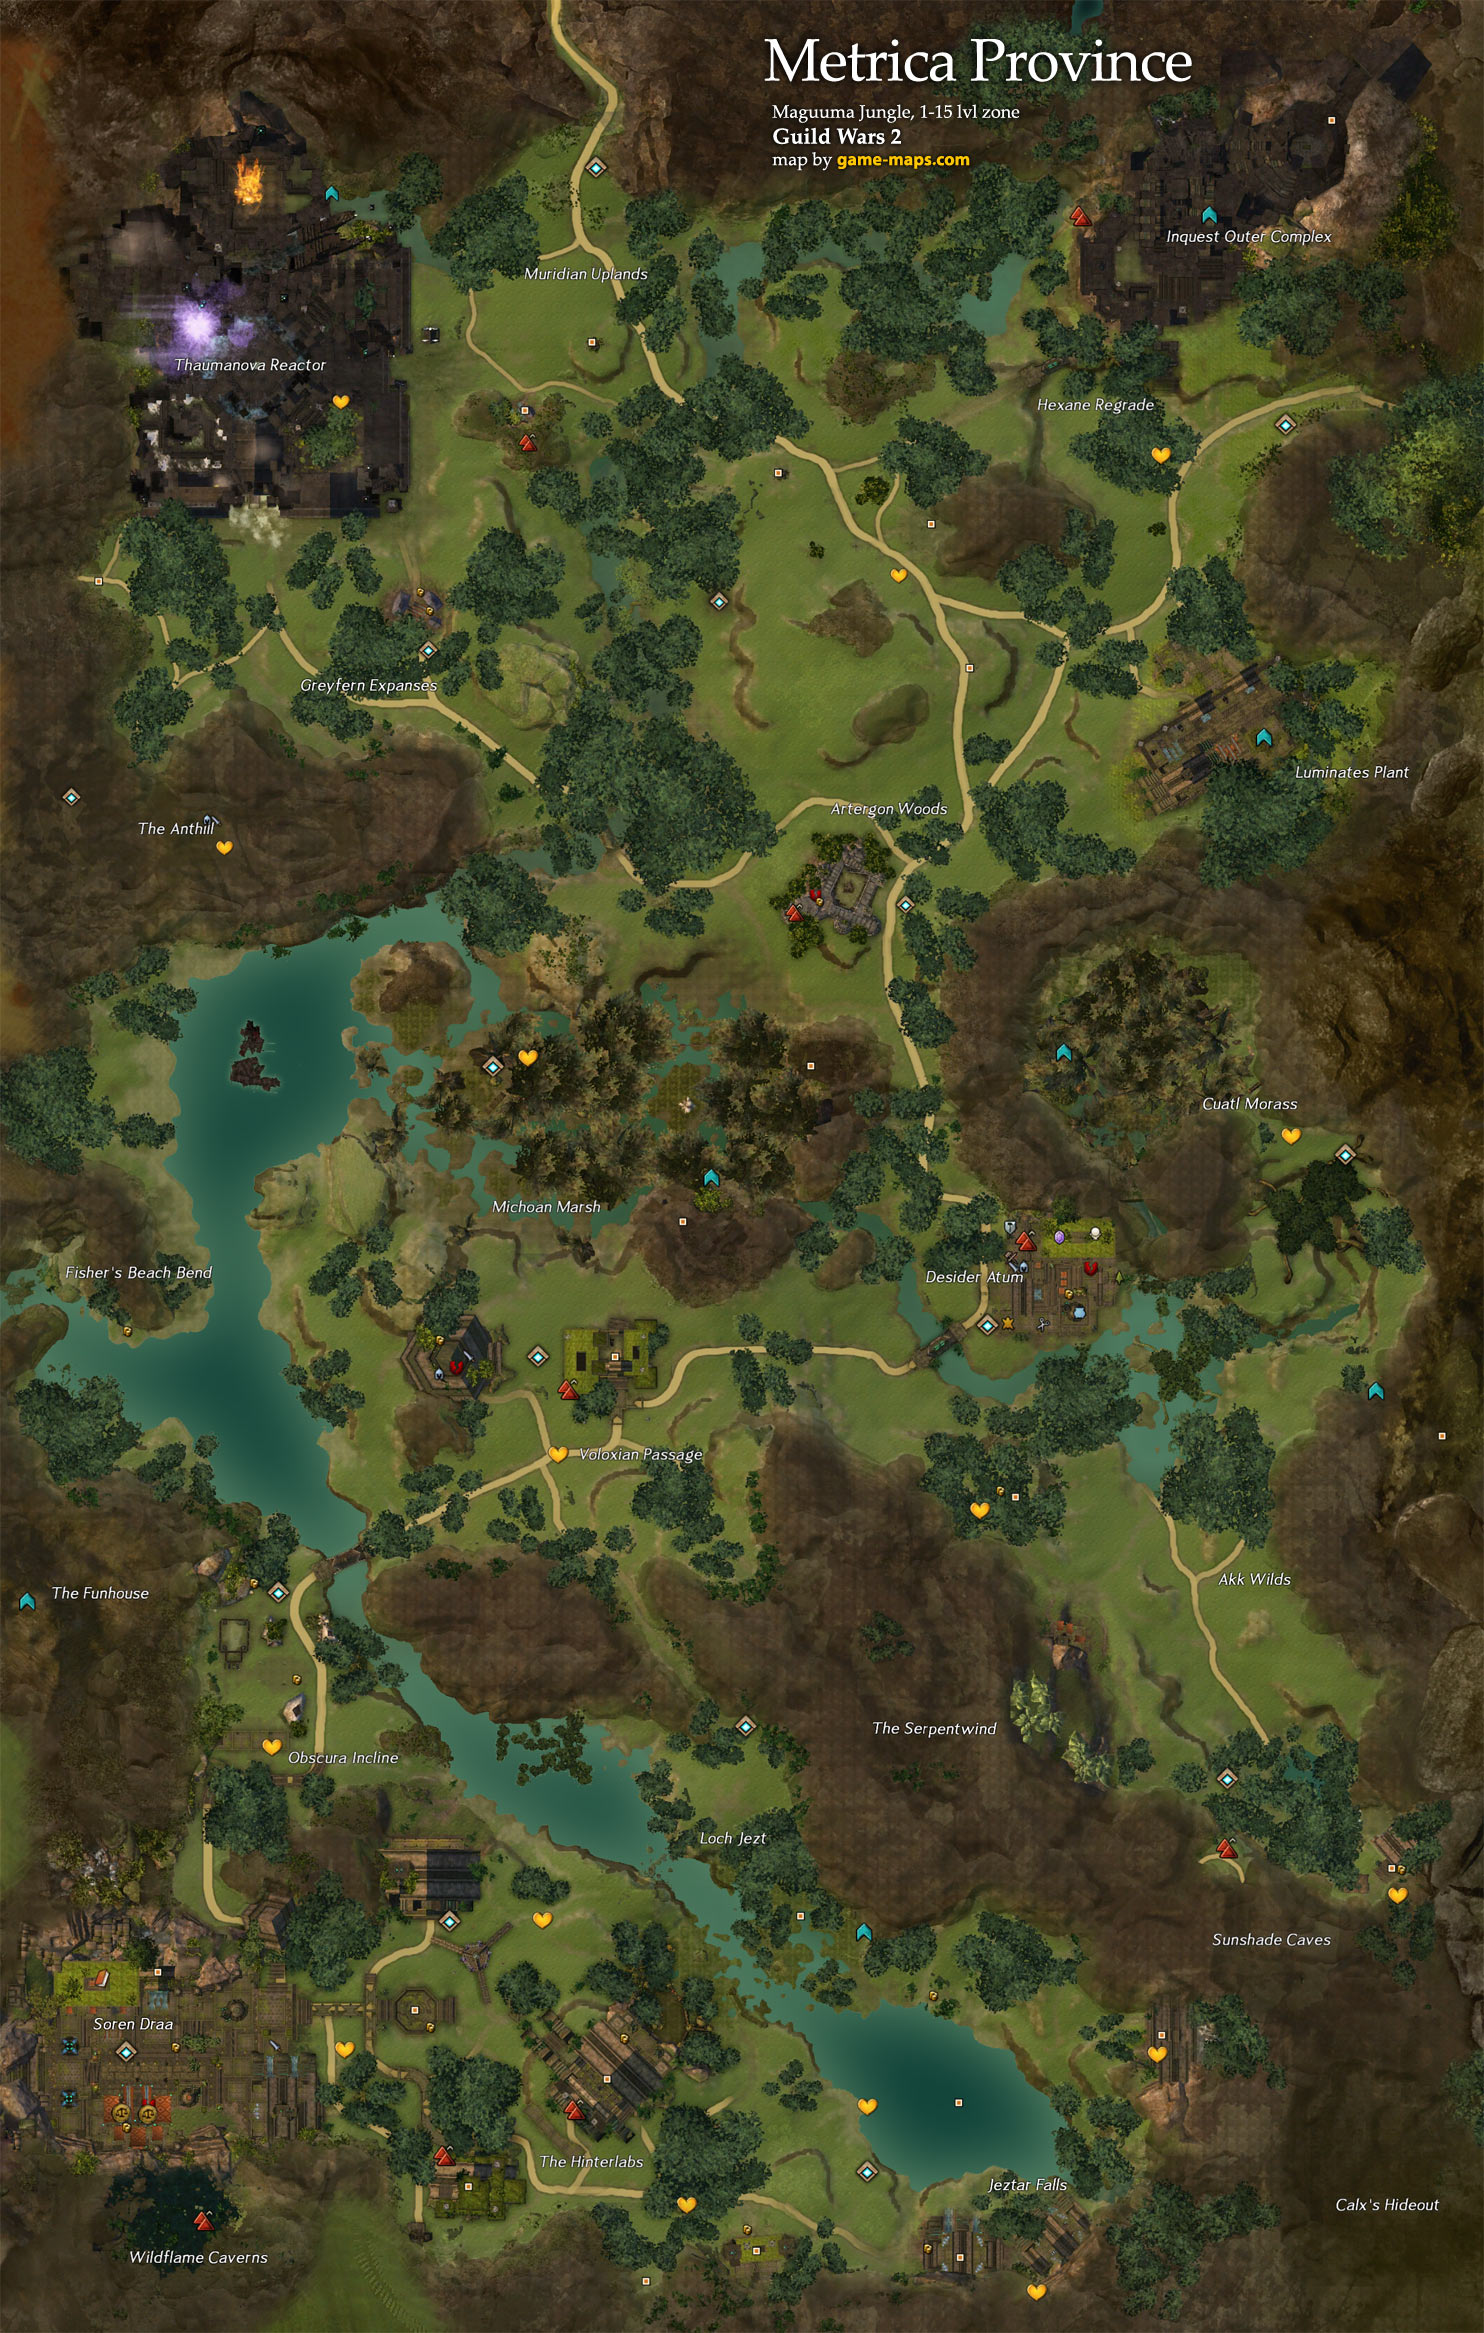 Metrica Province Map Guild Wars 2 Game Mapscom